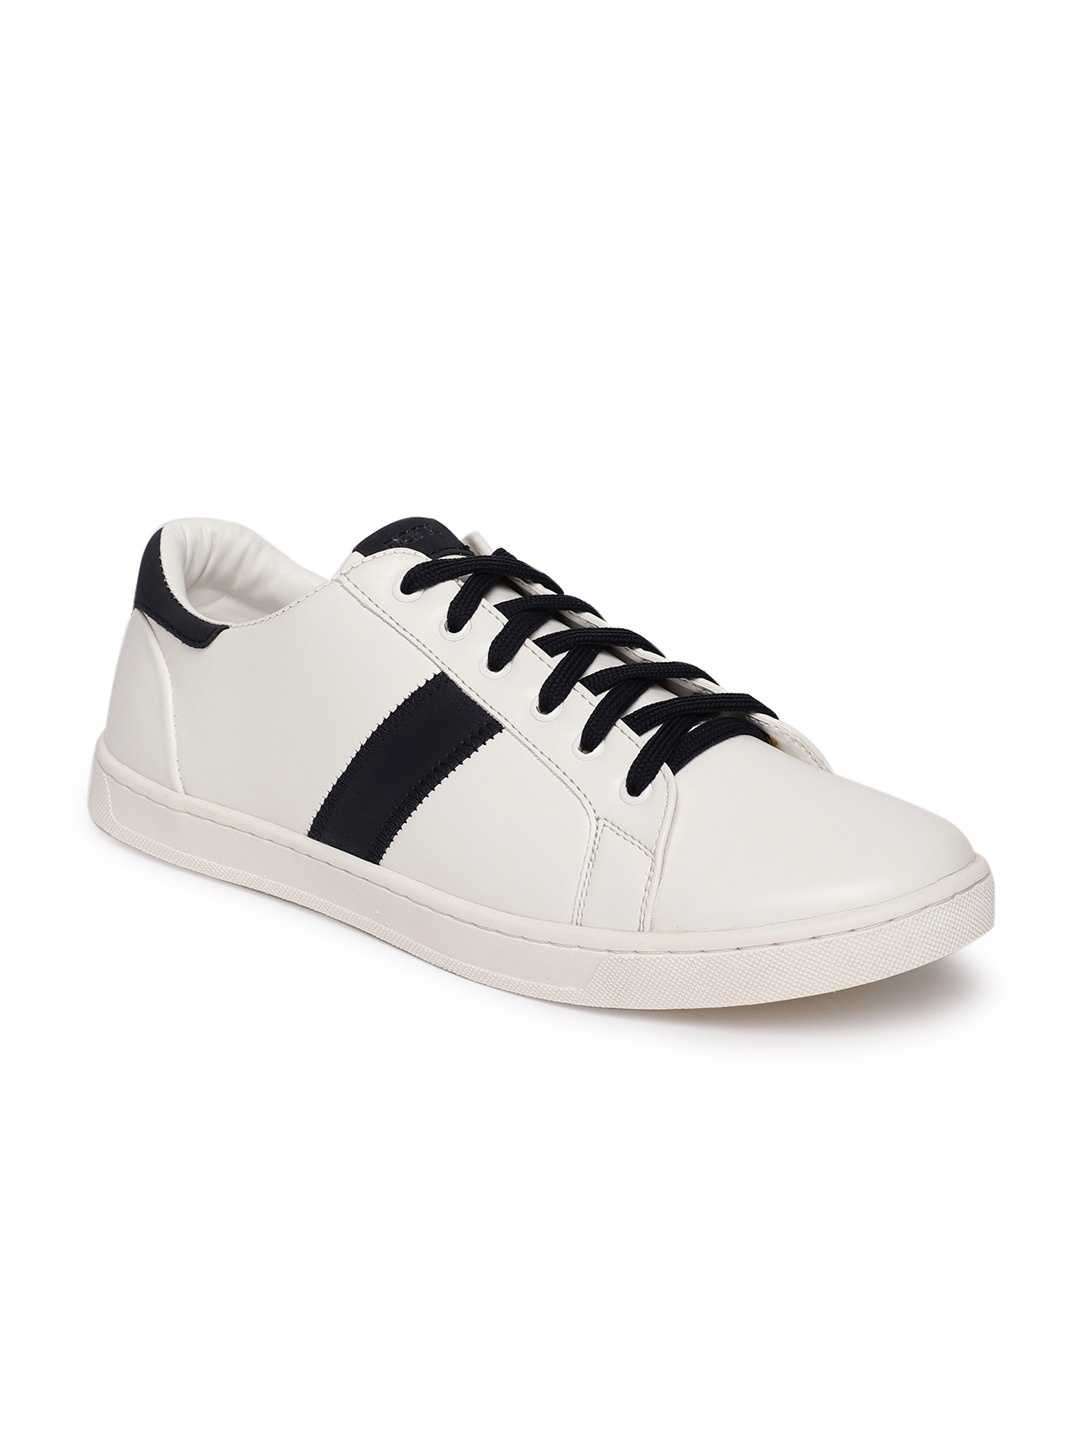 White Solid Sneakers